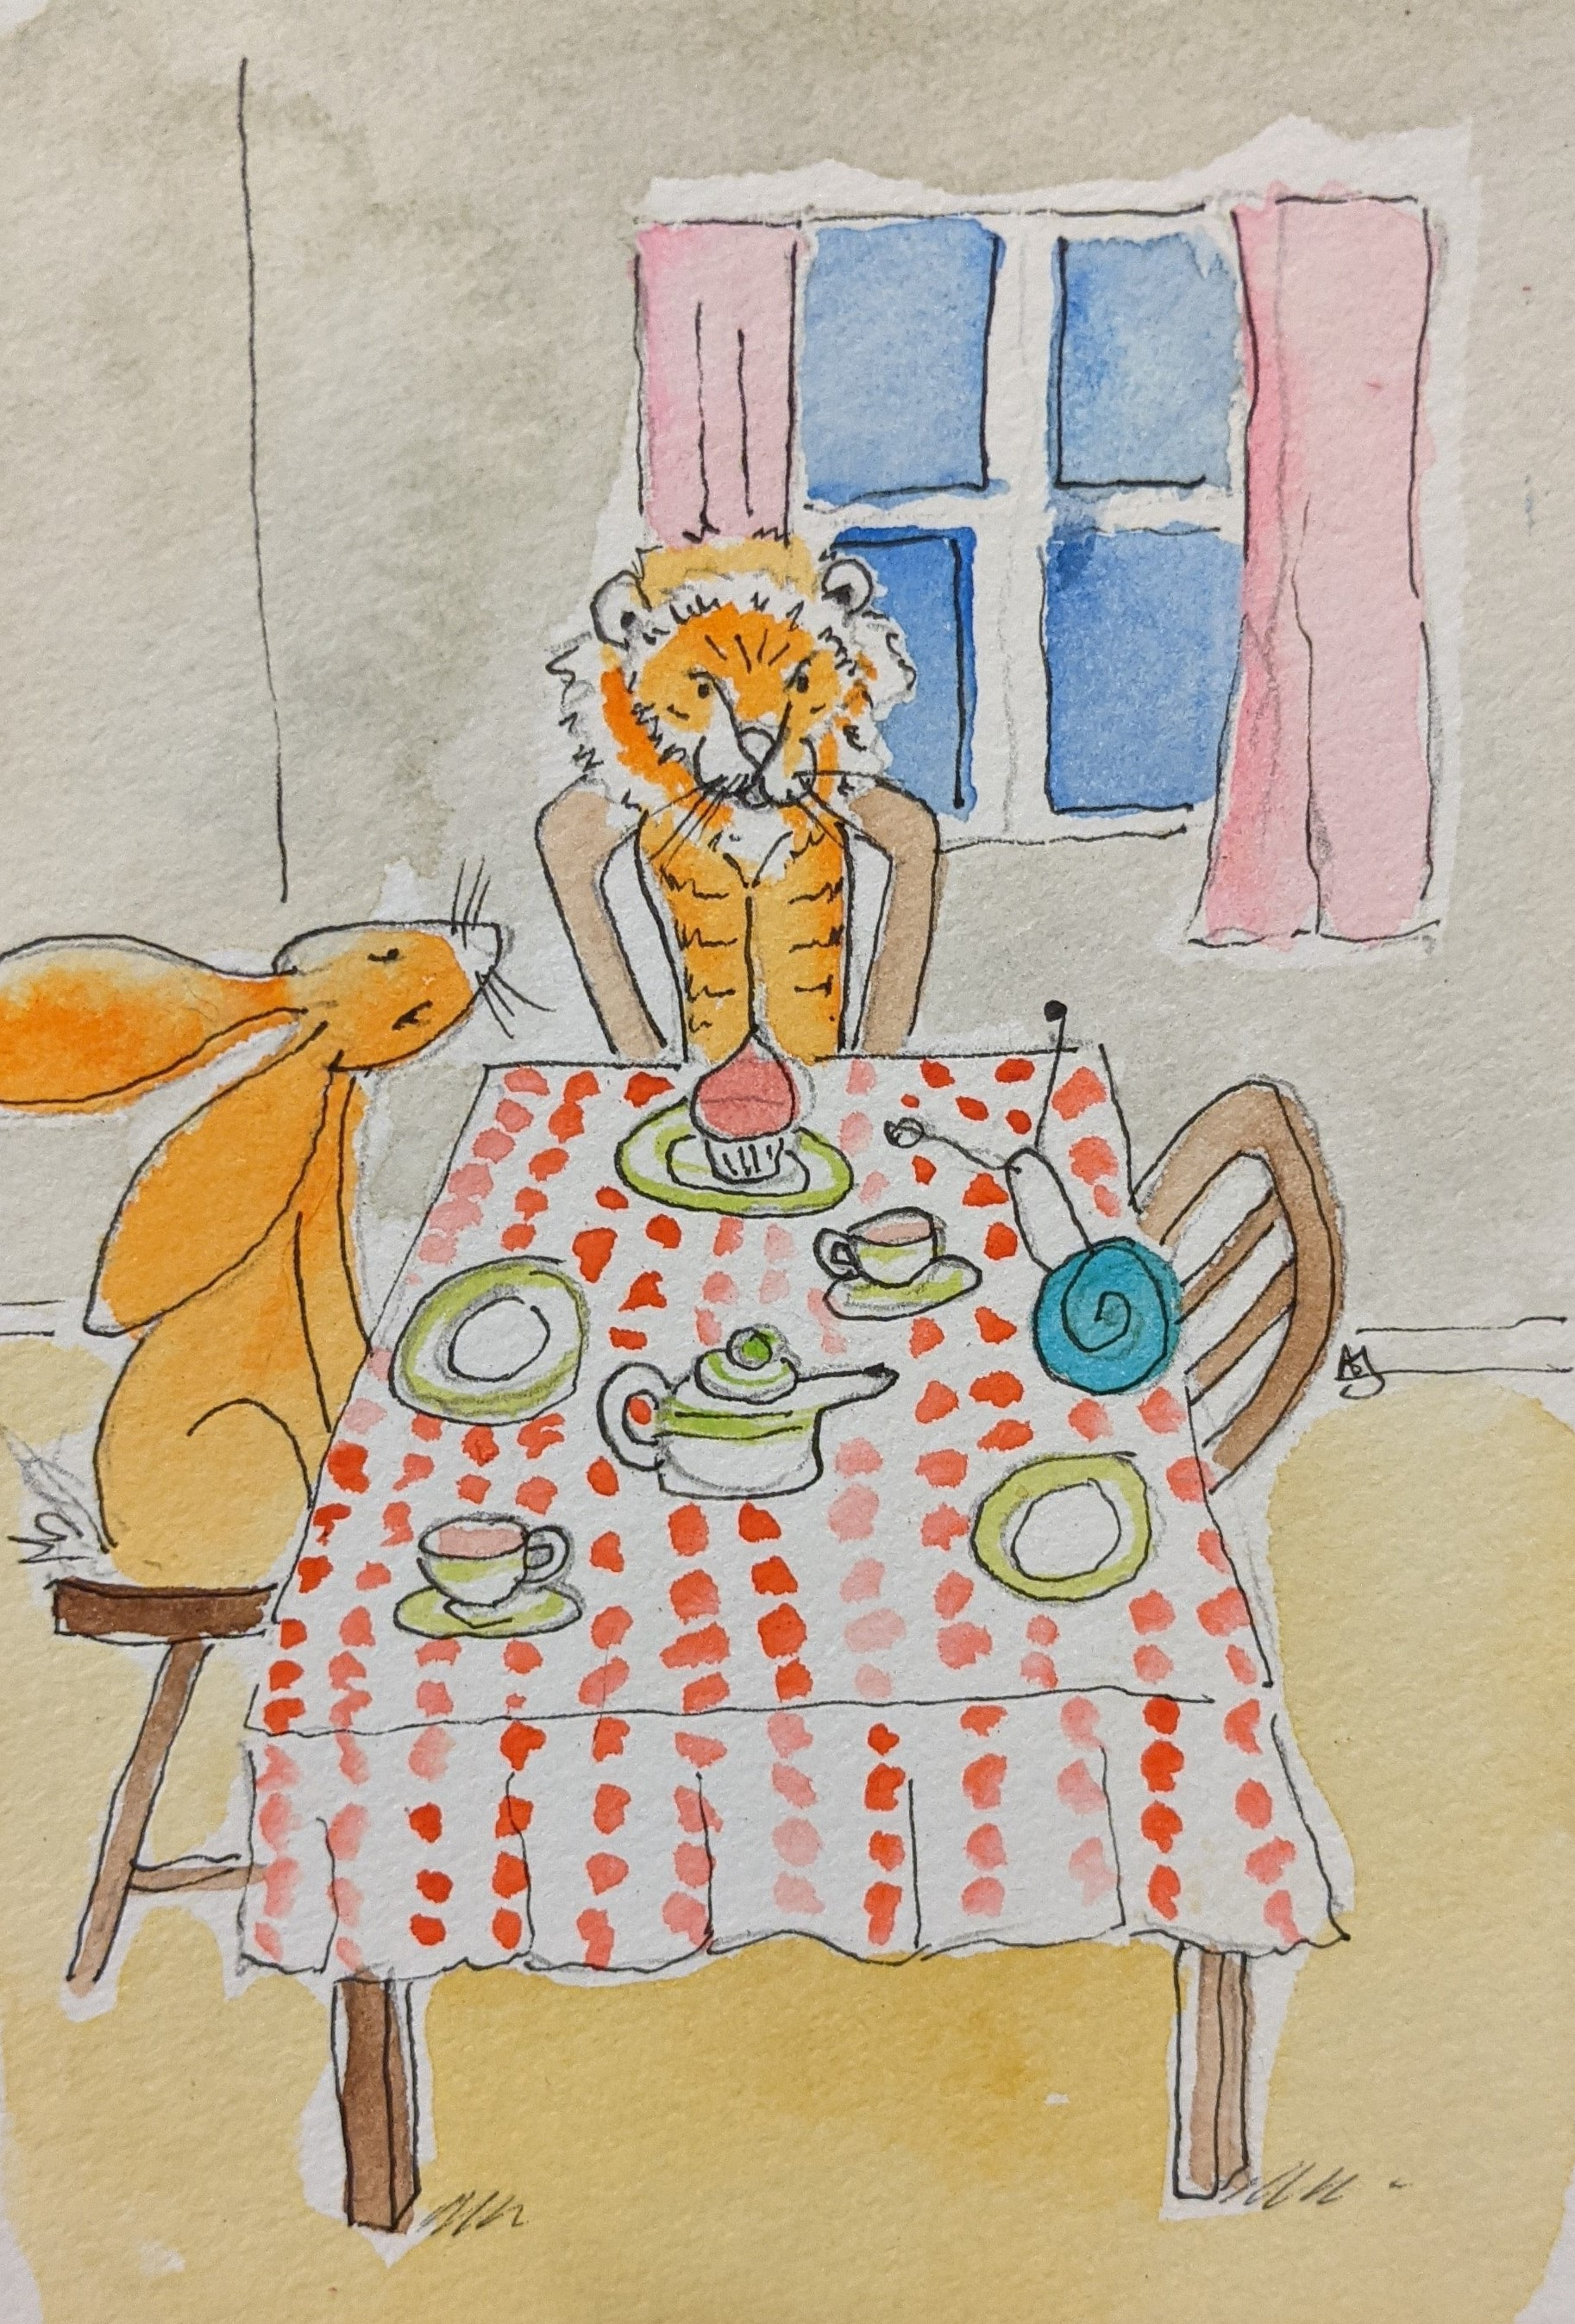 Day 25 The Tiger Who Came to Tea